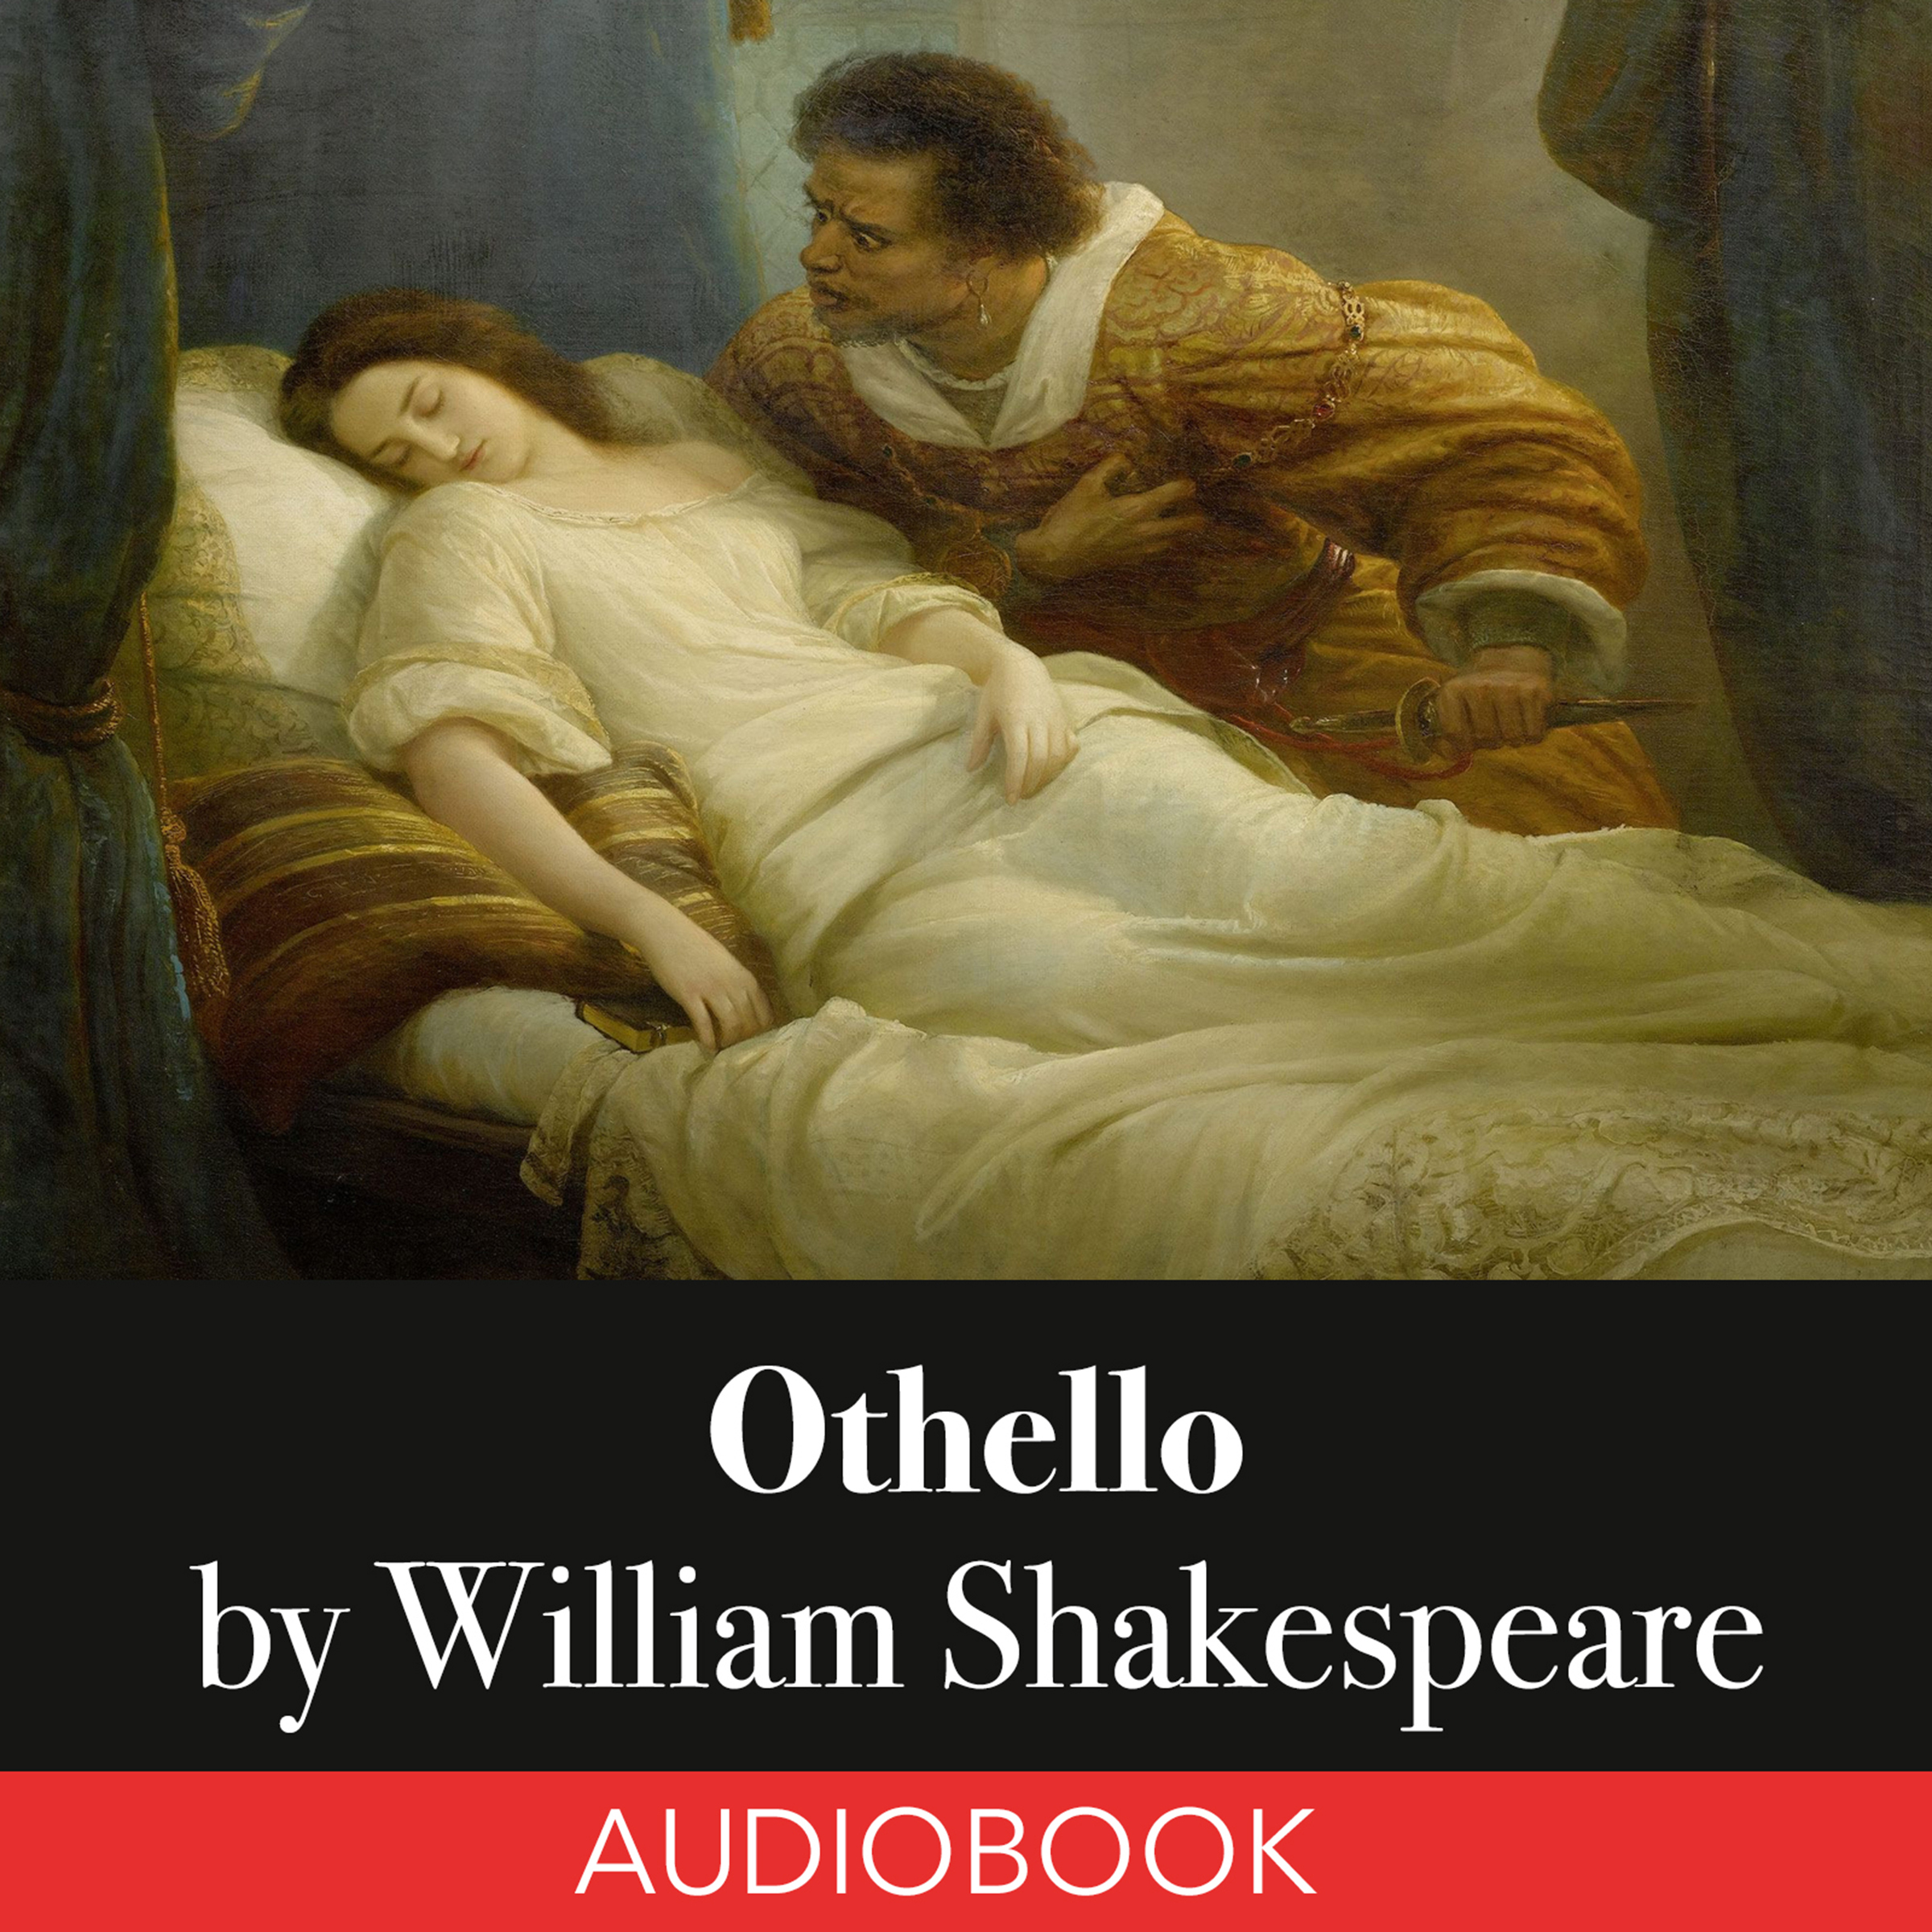 a summary of the play othello by william shakespeare Othello othello character it was the first nearly complete performance of a shakespeare play released the american actor william marshall performed the title.